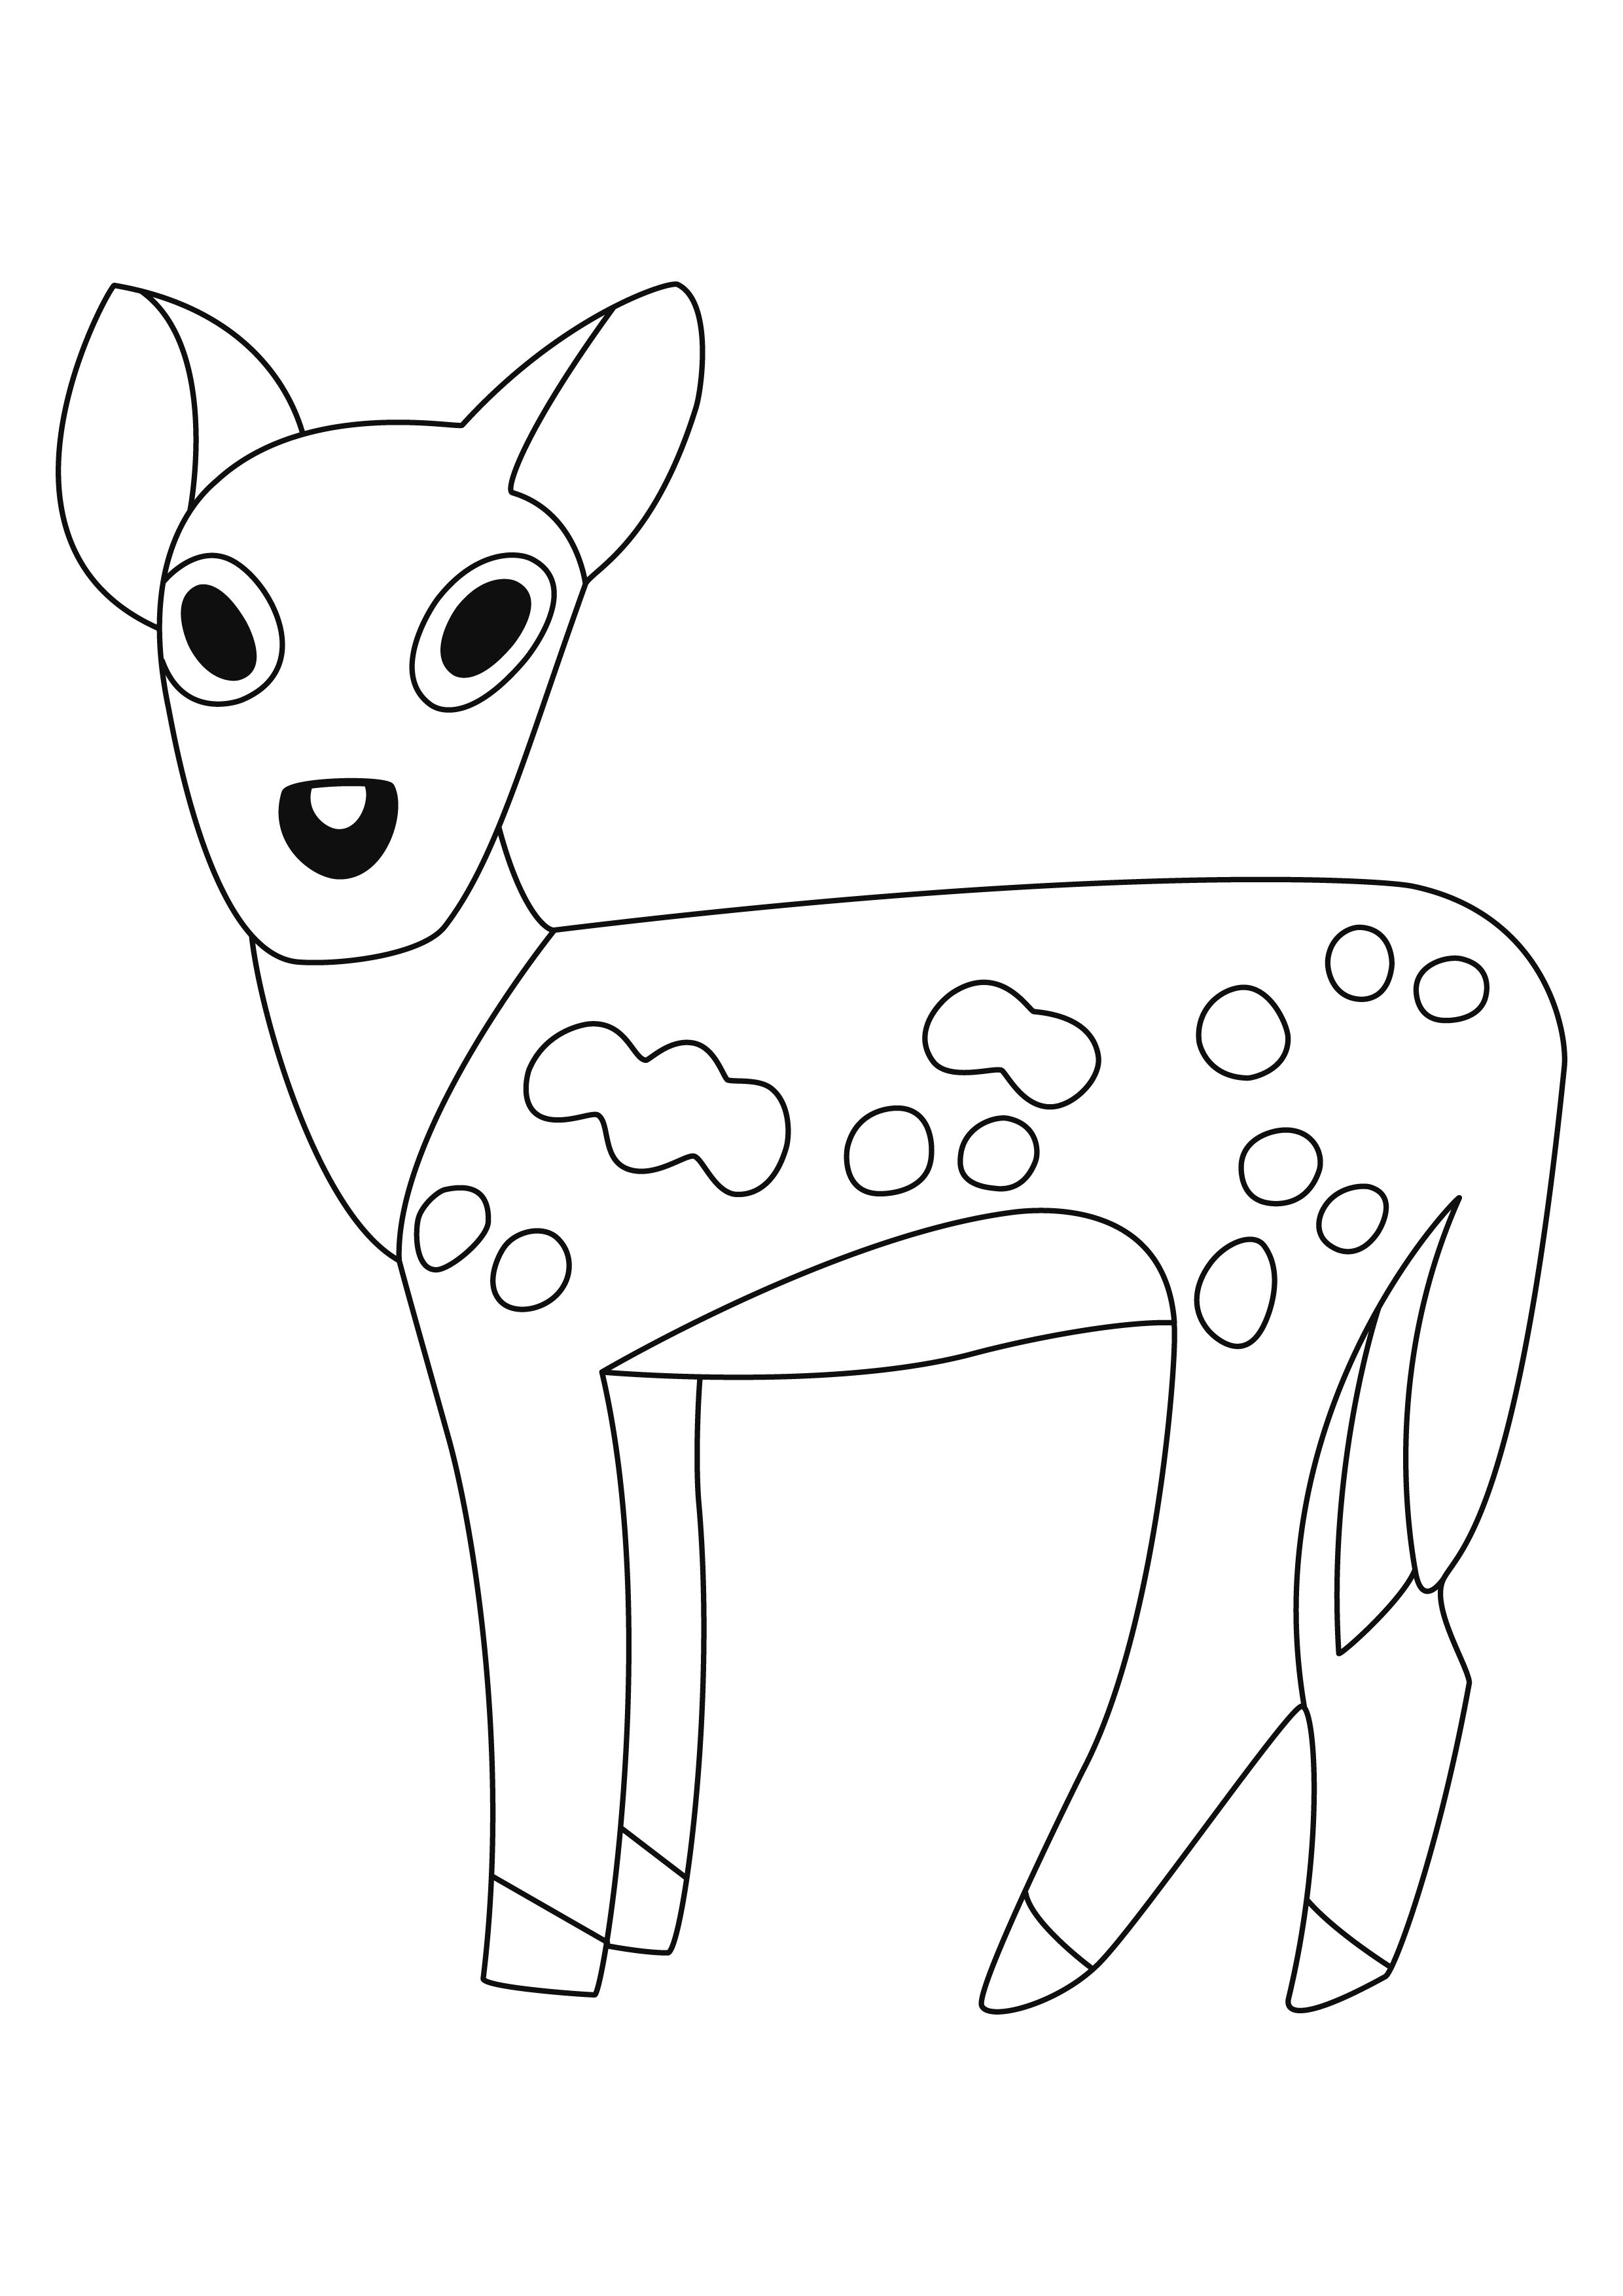 Coloriage - Animaux : Biche 03 - 10 Doigts